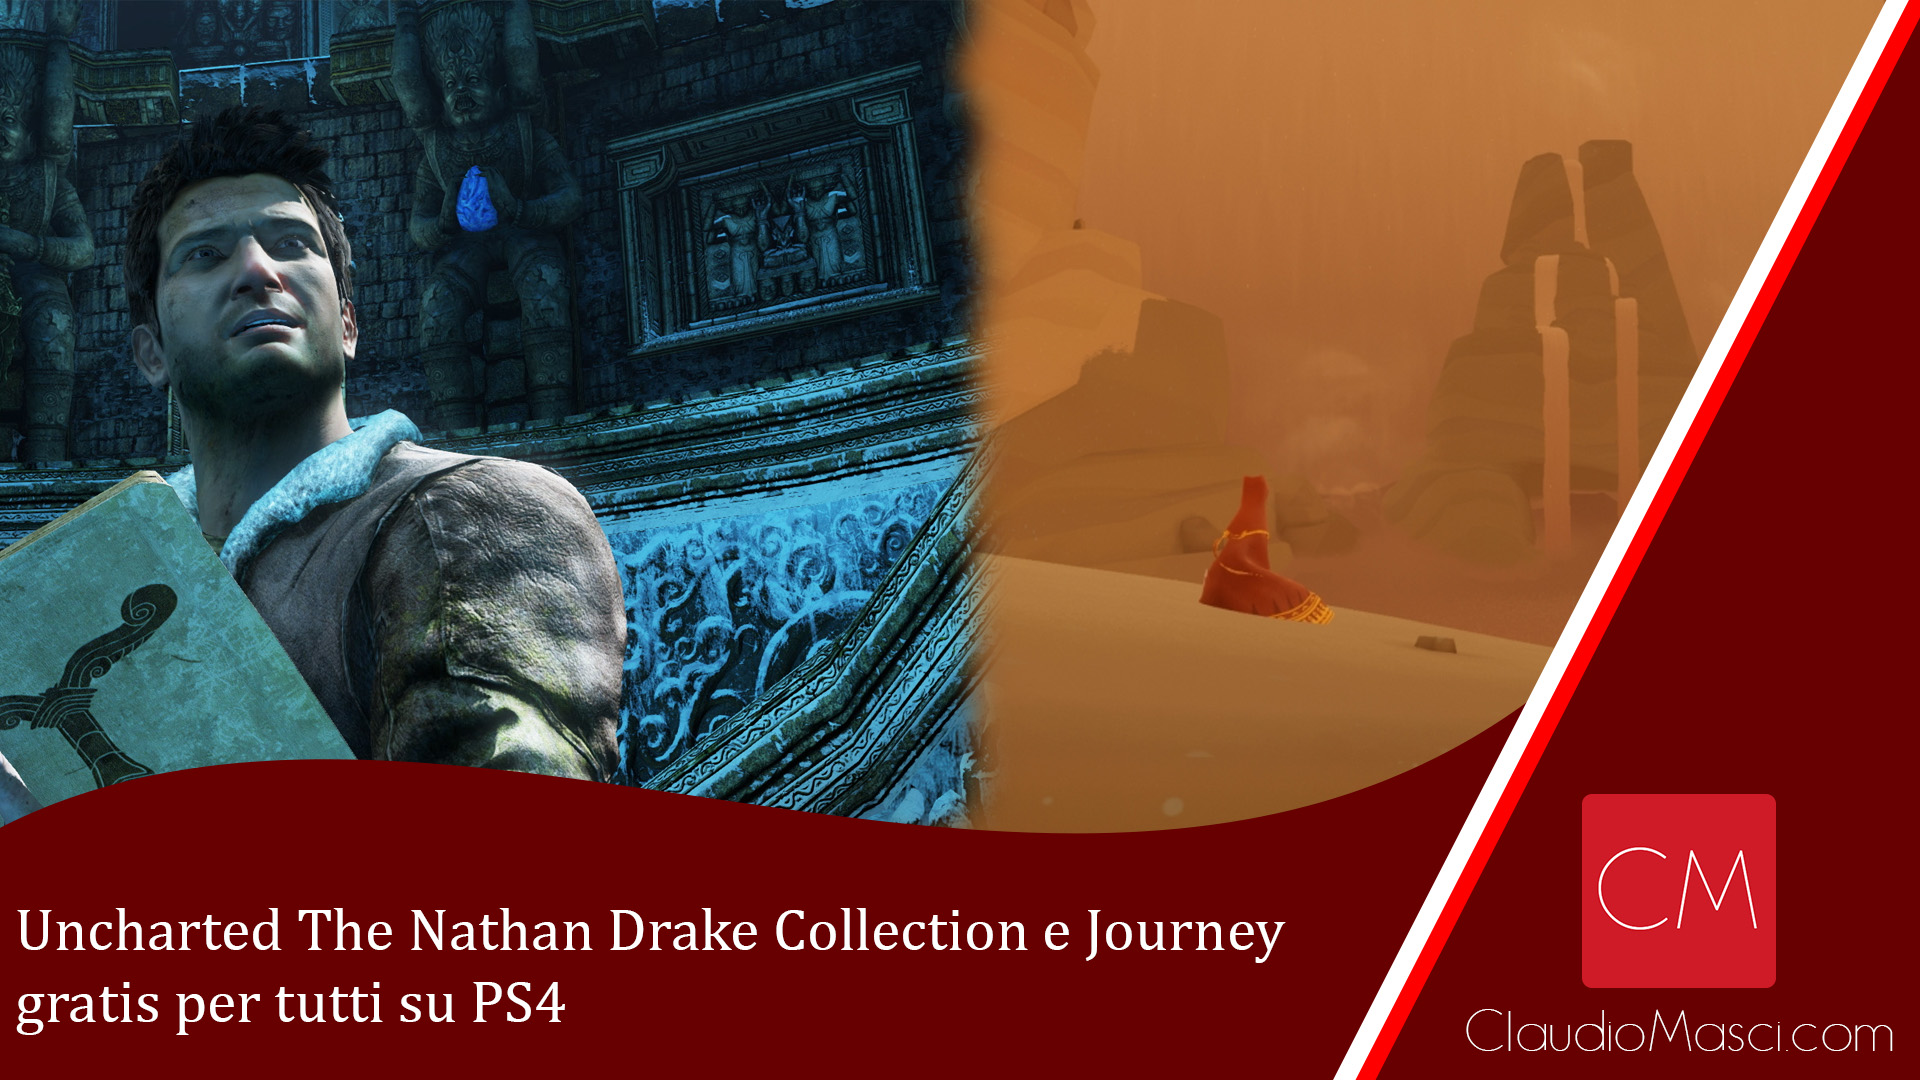 Uncharted The Nathan Drake Collection e Journey gratis per tutti su PS4